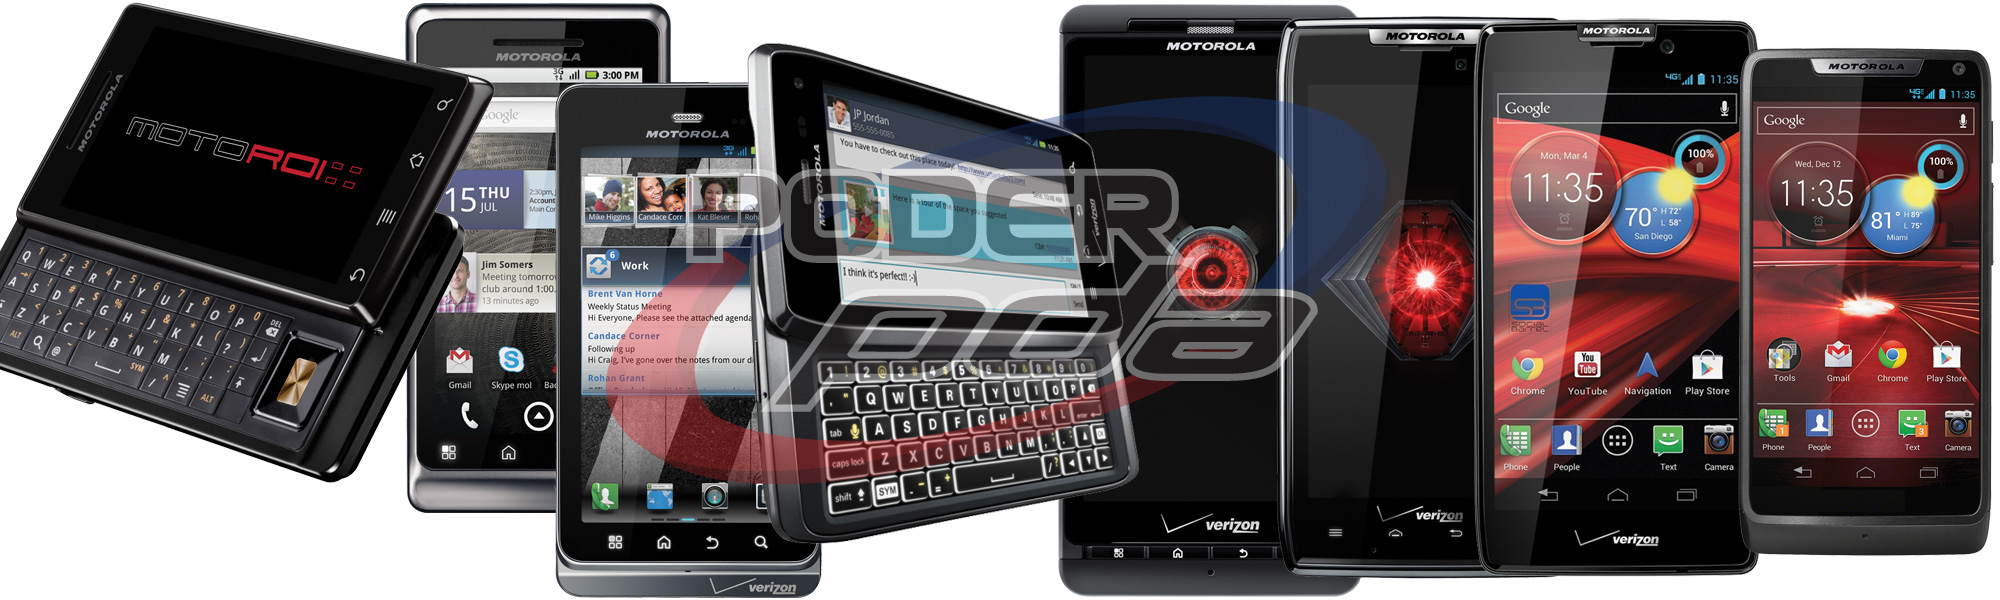 Motorola_Smartphone_Android_FAMILY